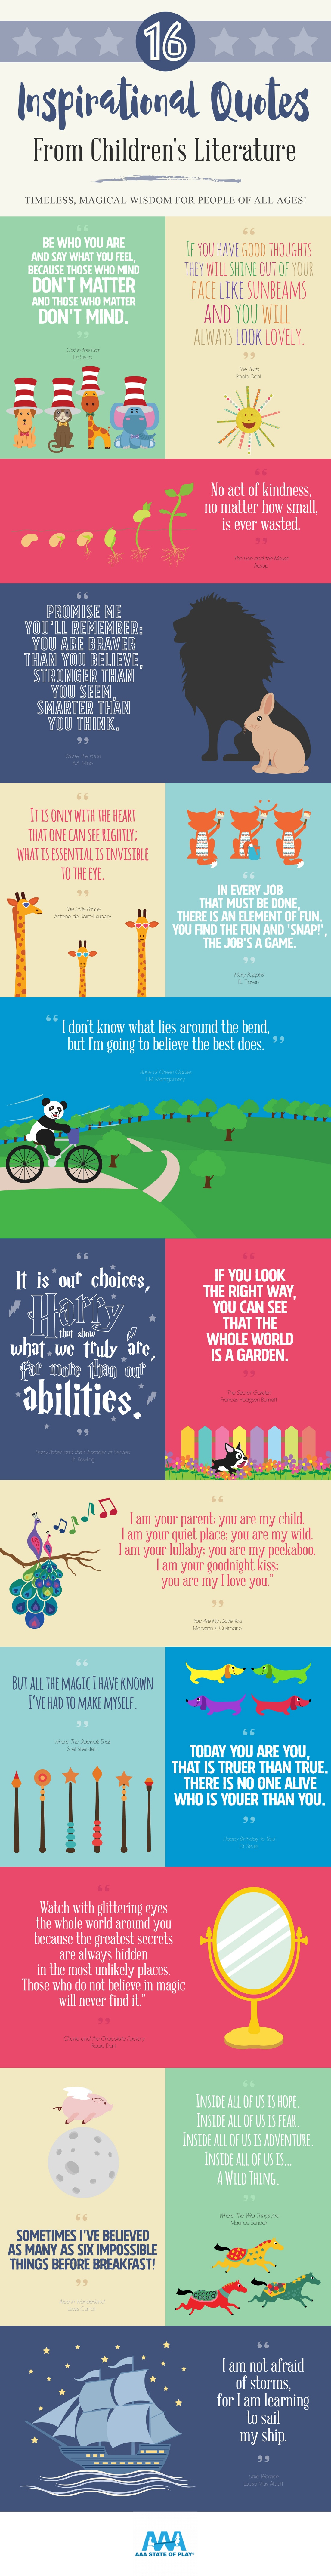 inspirational quotes from children 39 s literature